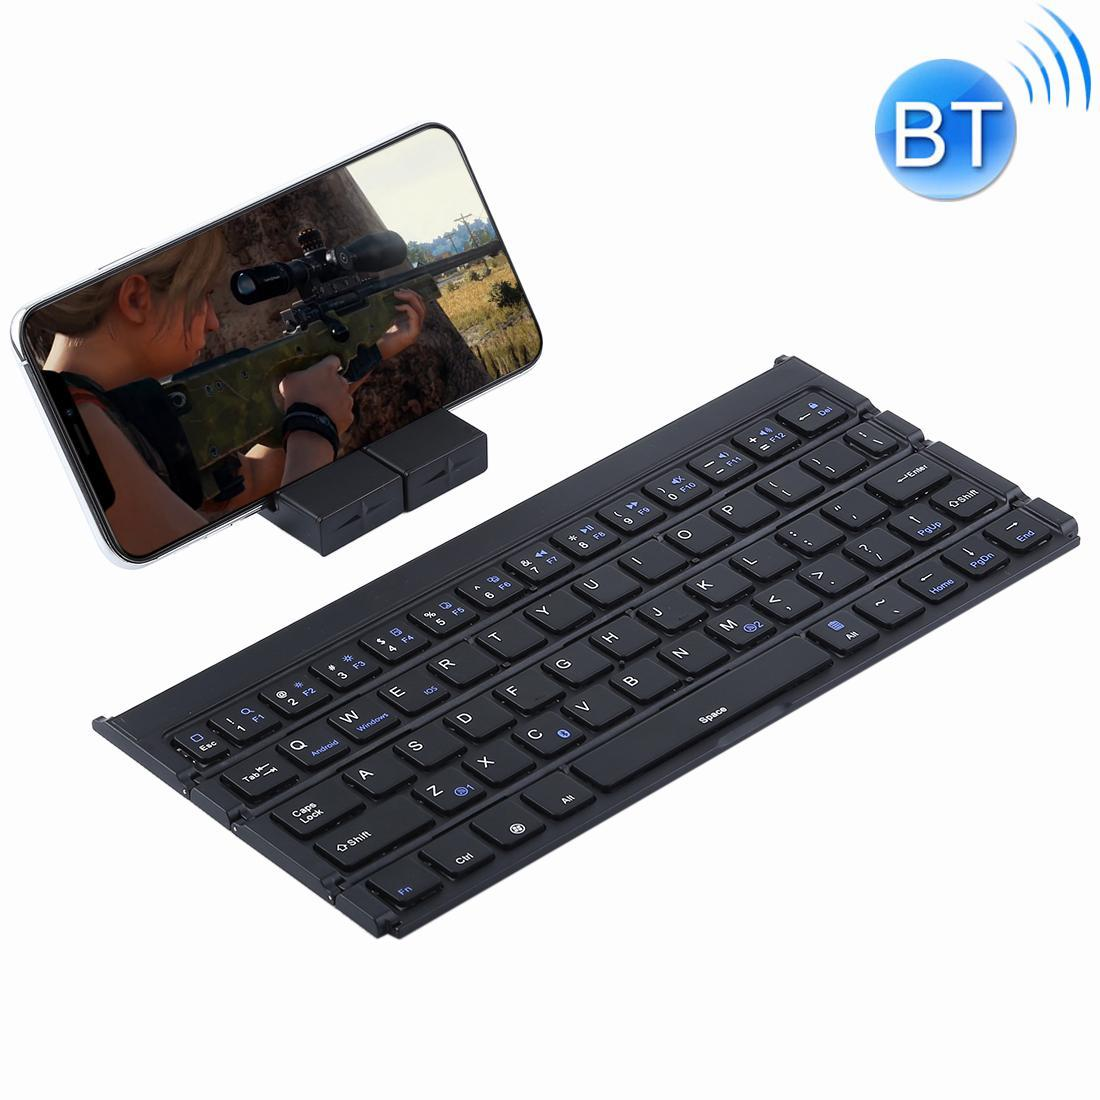 GK808 Ultra-thin Foldable Bluetooth V3.0 Keyboard, Built-in Holder, Support Android / iOS / Windows System